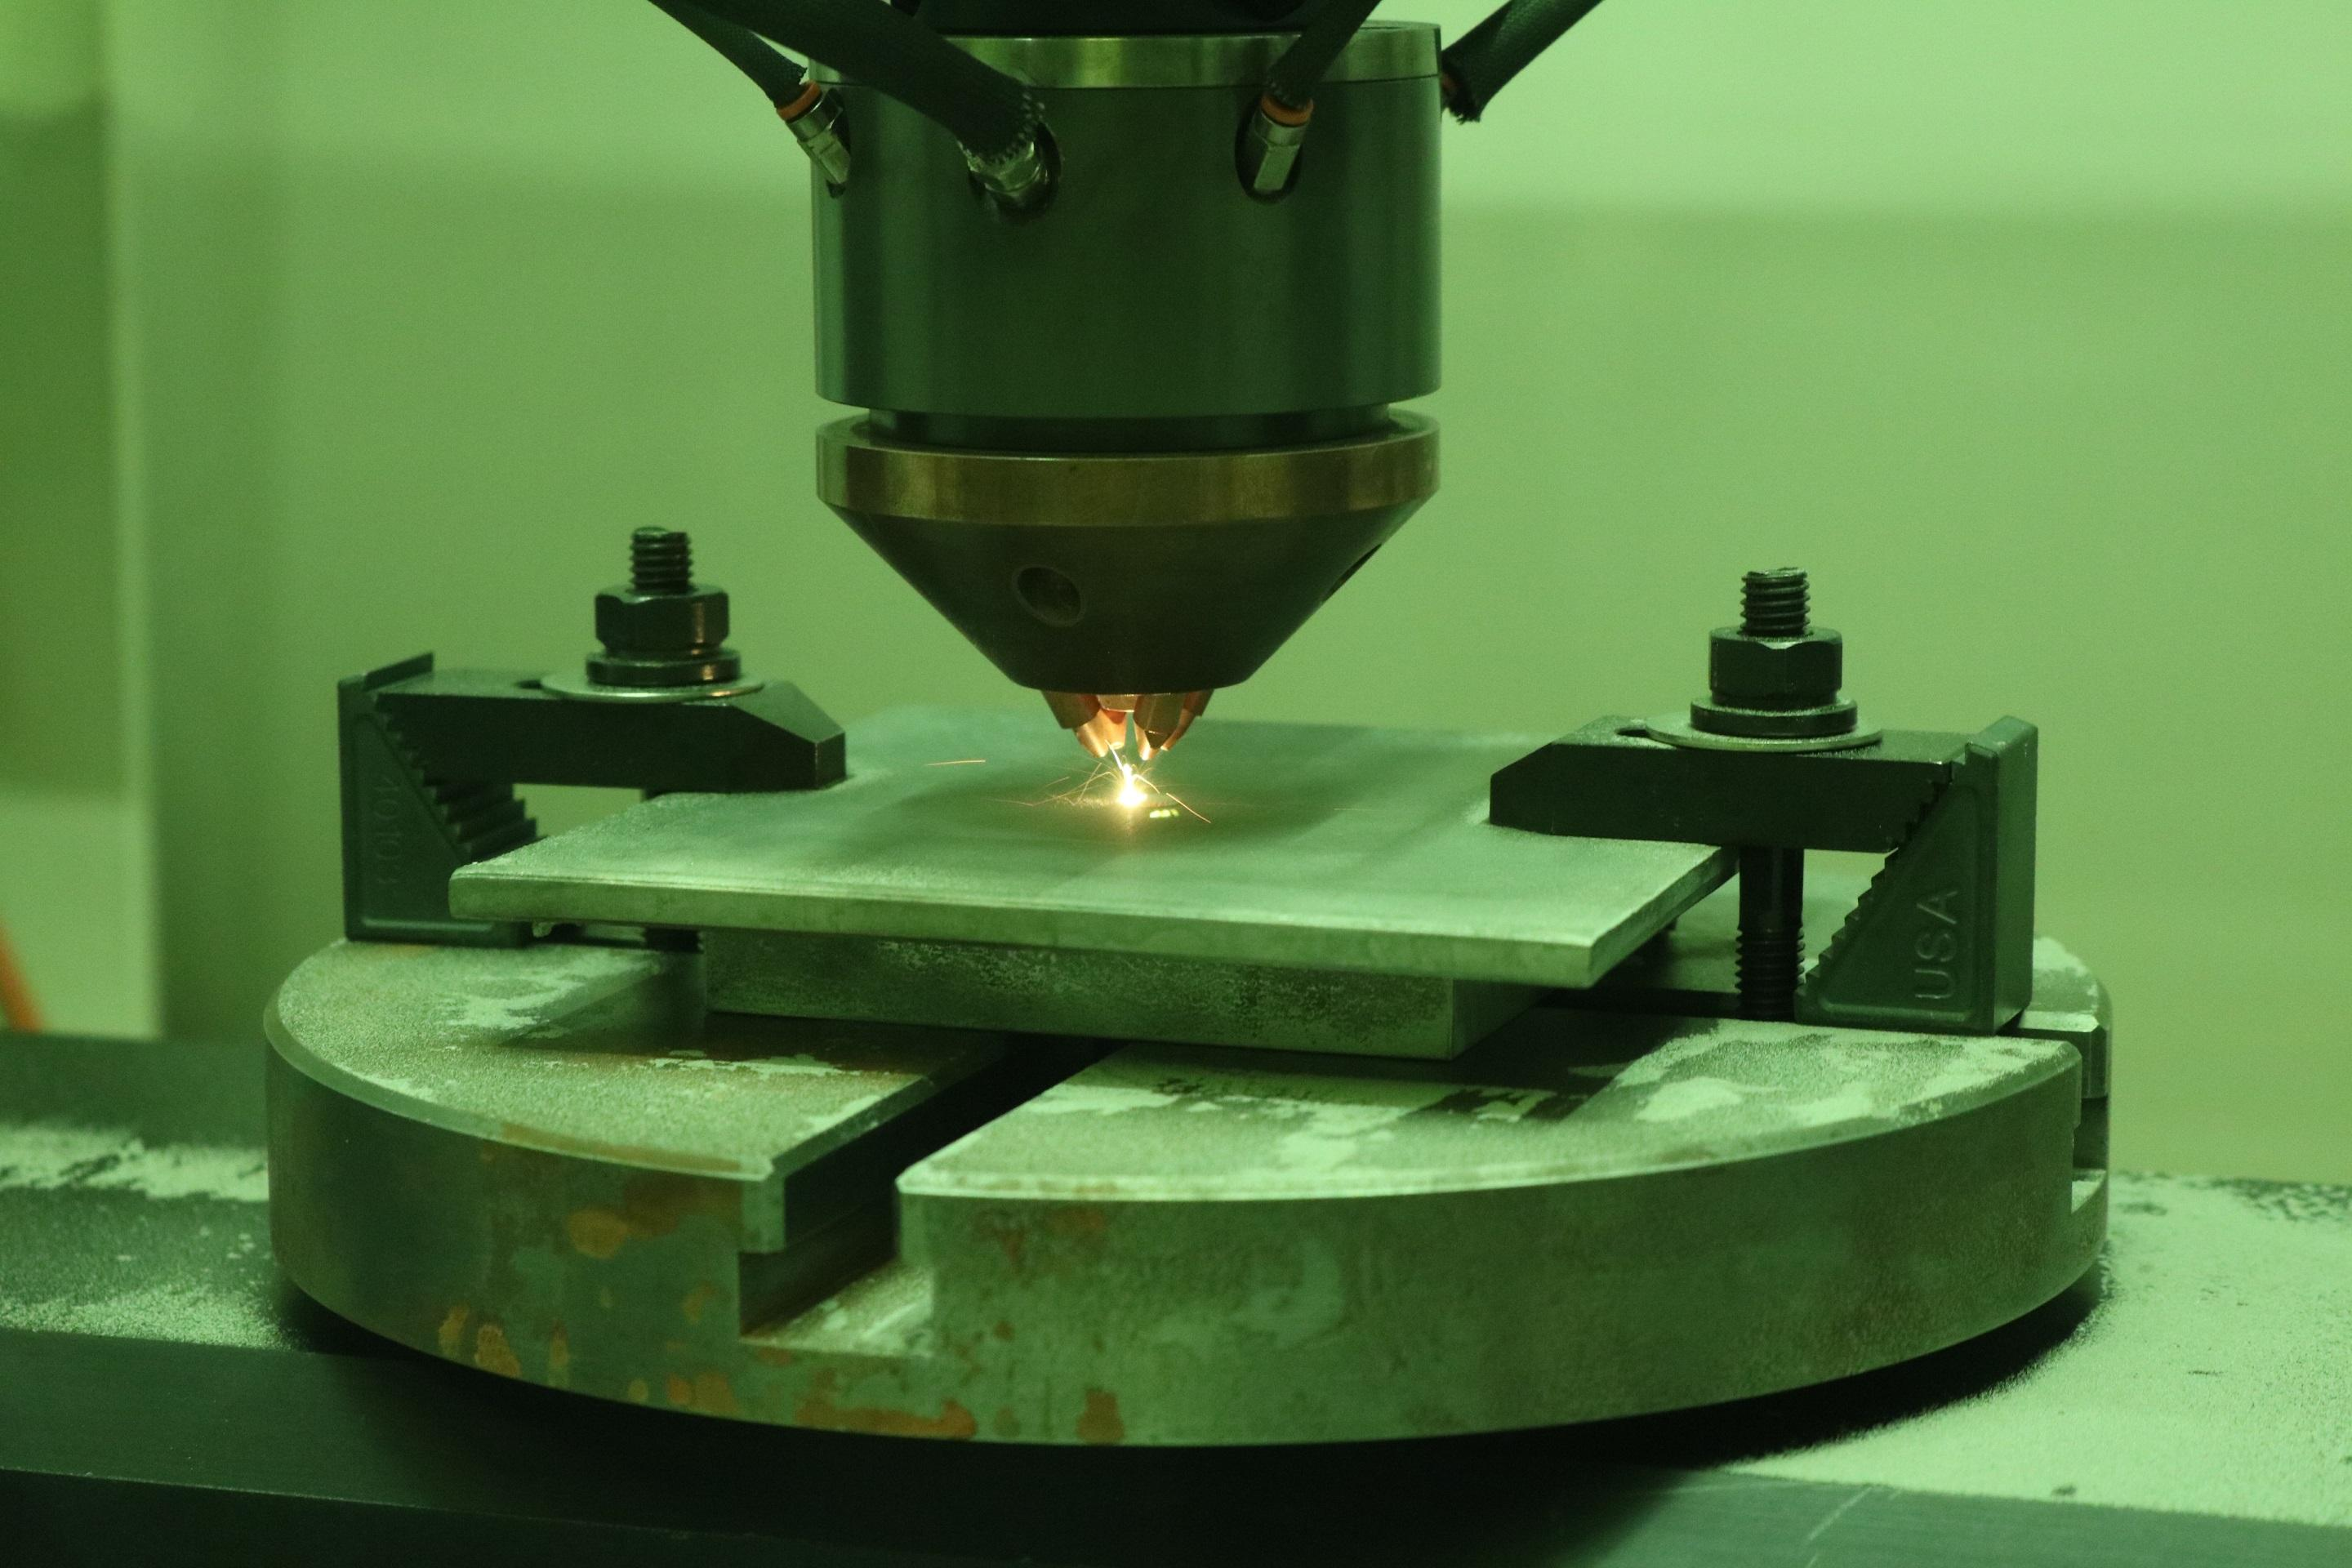 Engineers conduct bead on plate trials using additive manufacturing